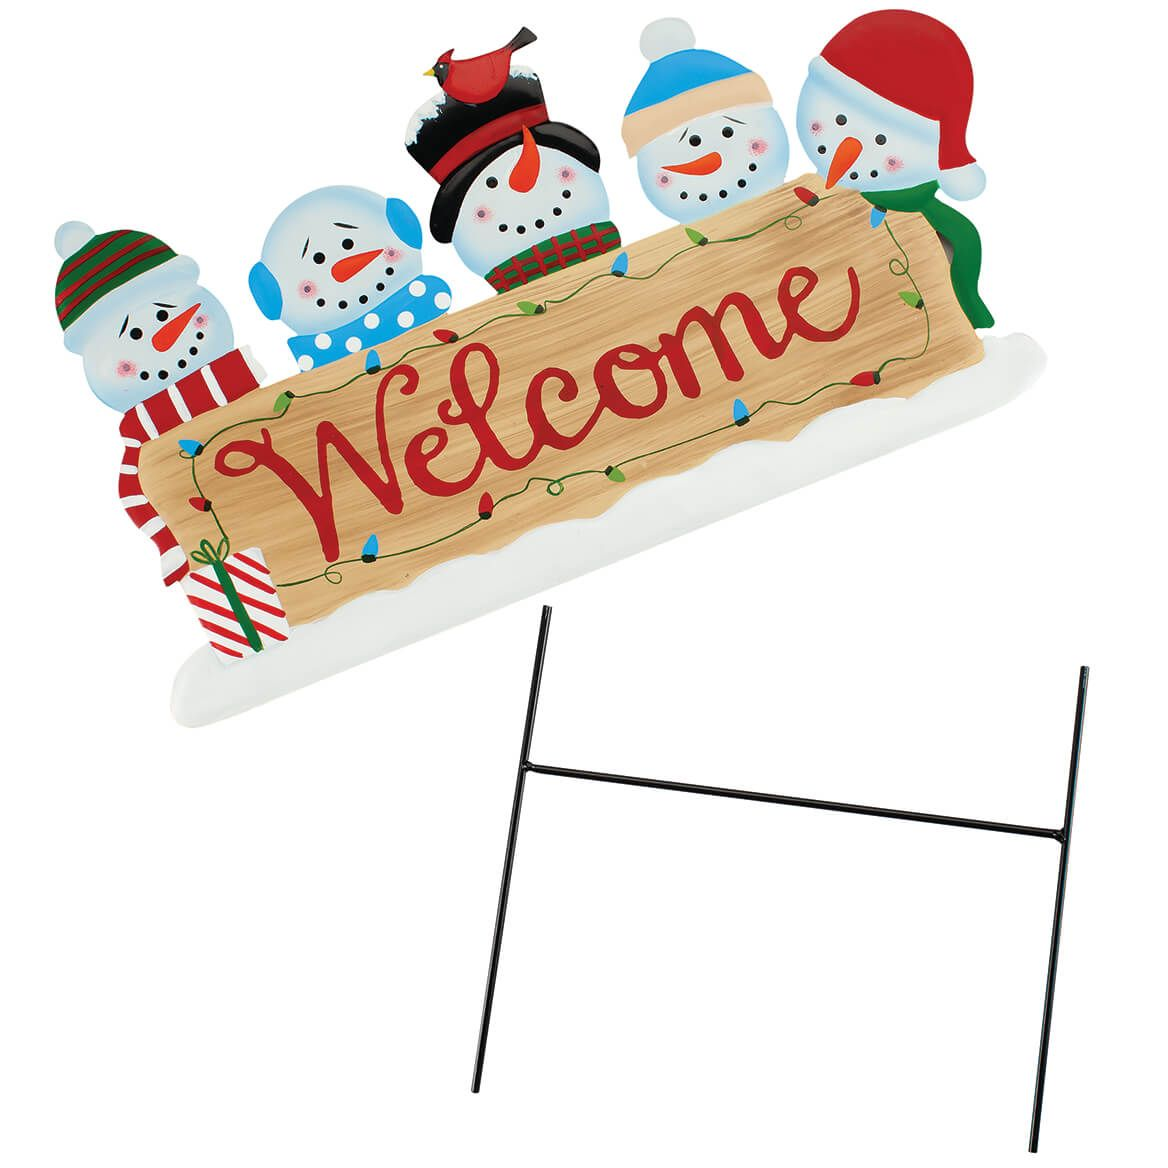 Welcome Snowman Metal Yard Stake by Fox River™ Creations-372081